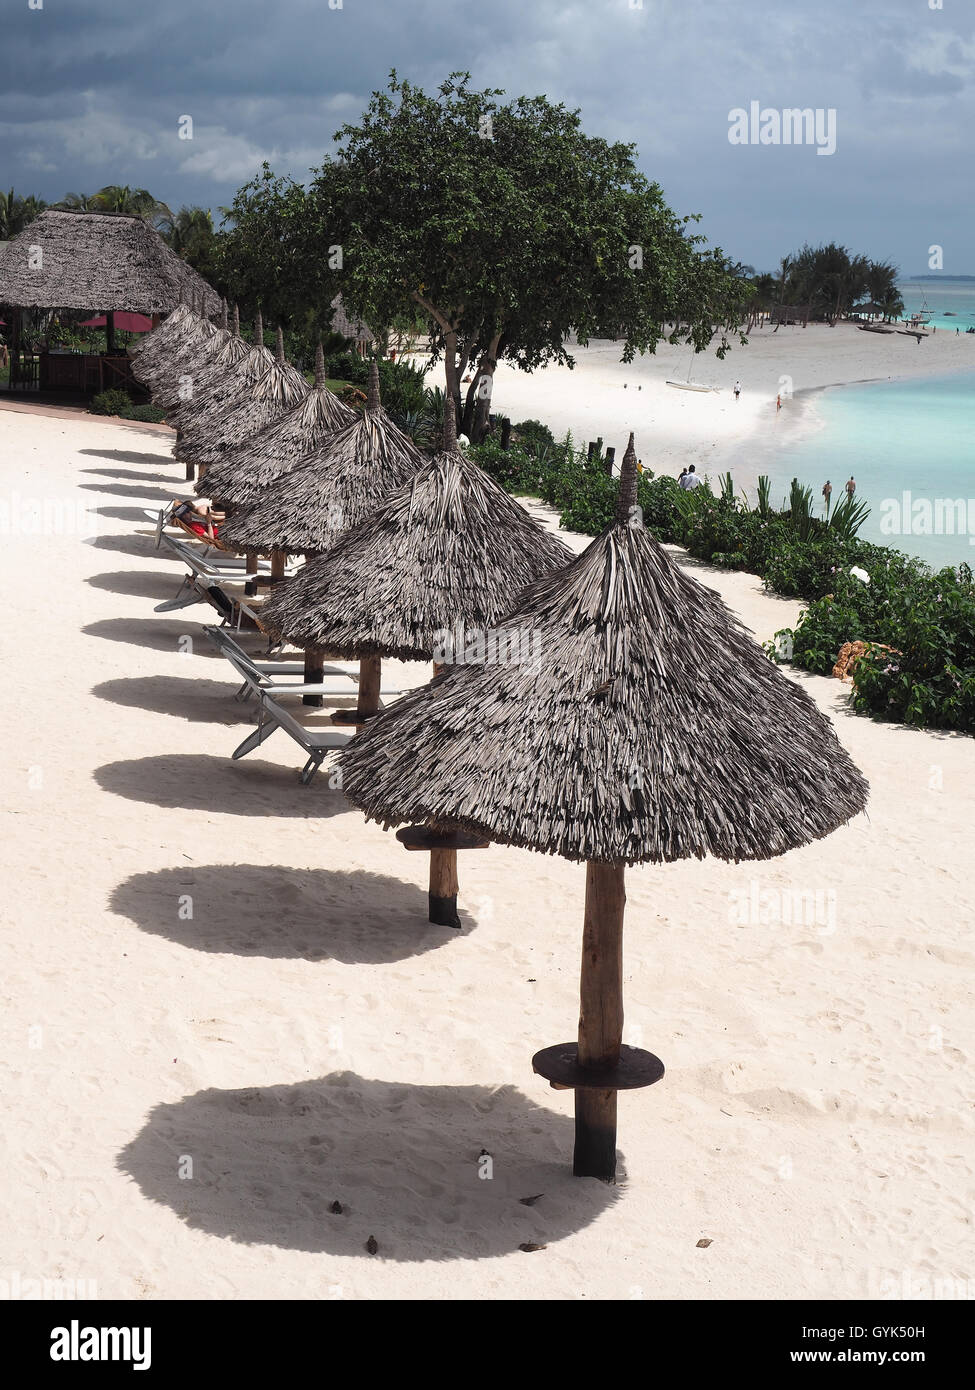 View looking down on a row of thatched sun shade umbrellas casting shadows on a white sandy beach Stock Photo